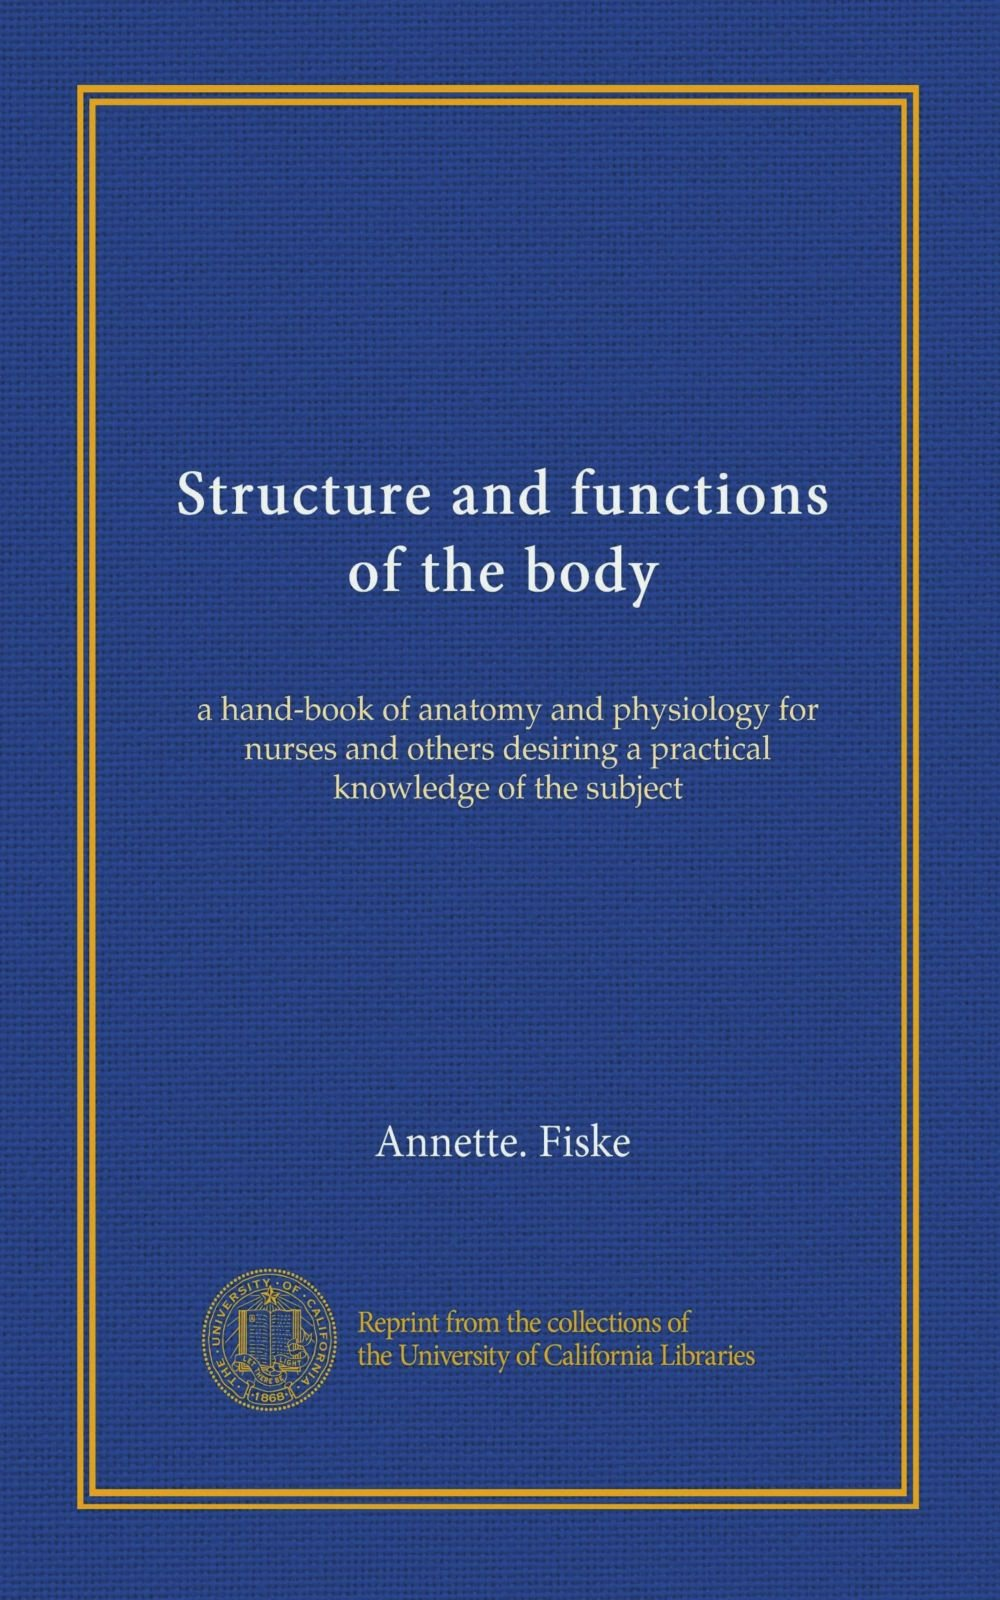 Download Structure and functions of the body: a hand-book of anatomy and physiology for nurses and others desiring a practical knowledge of the subject pdf